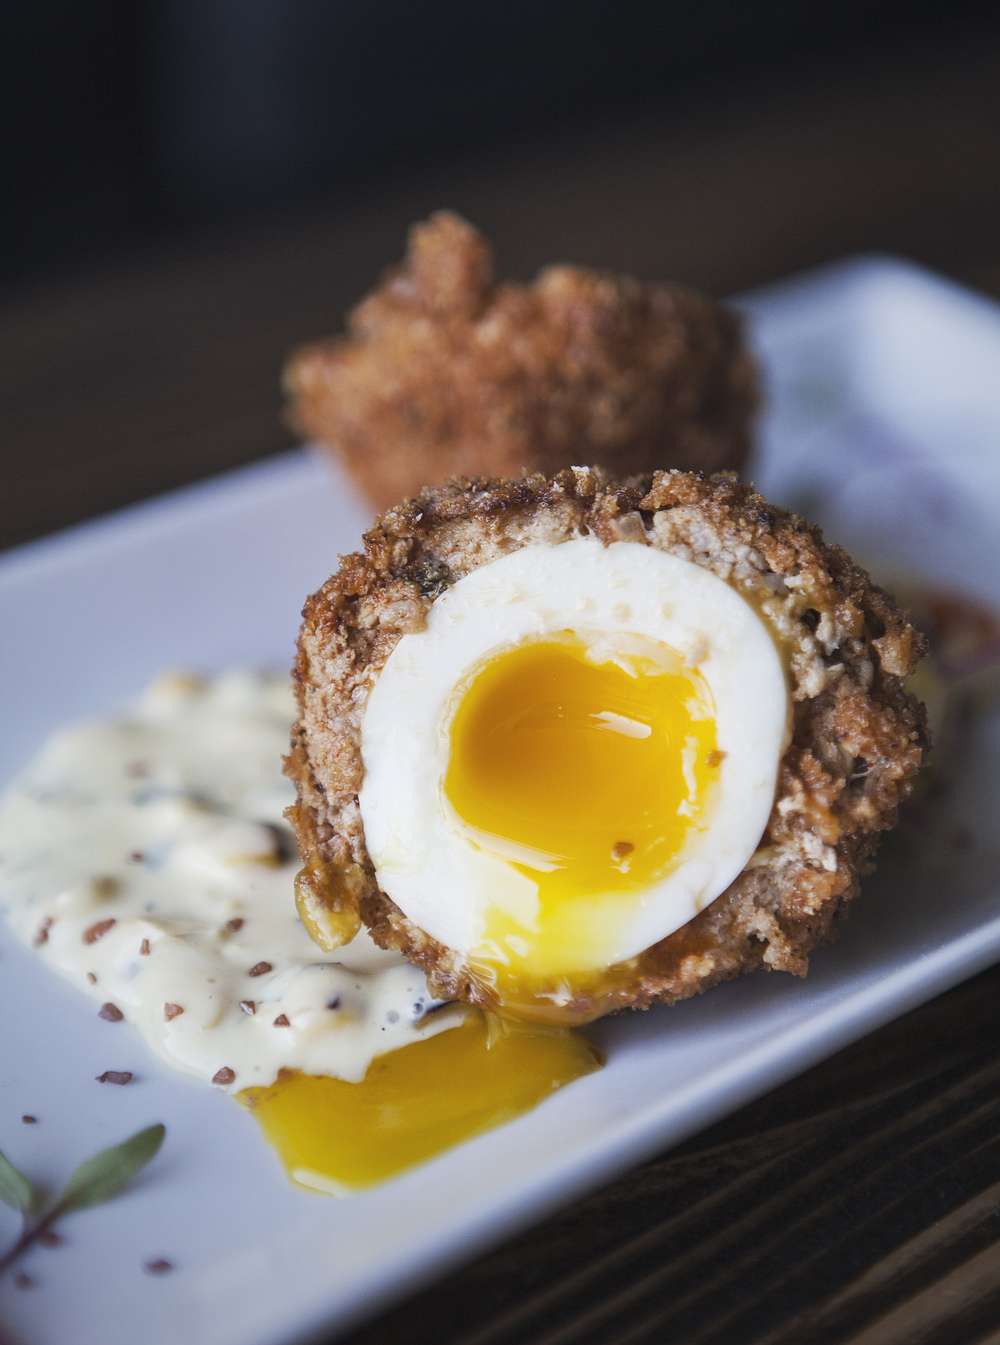 The scotch egg complete with runny yolk.